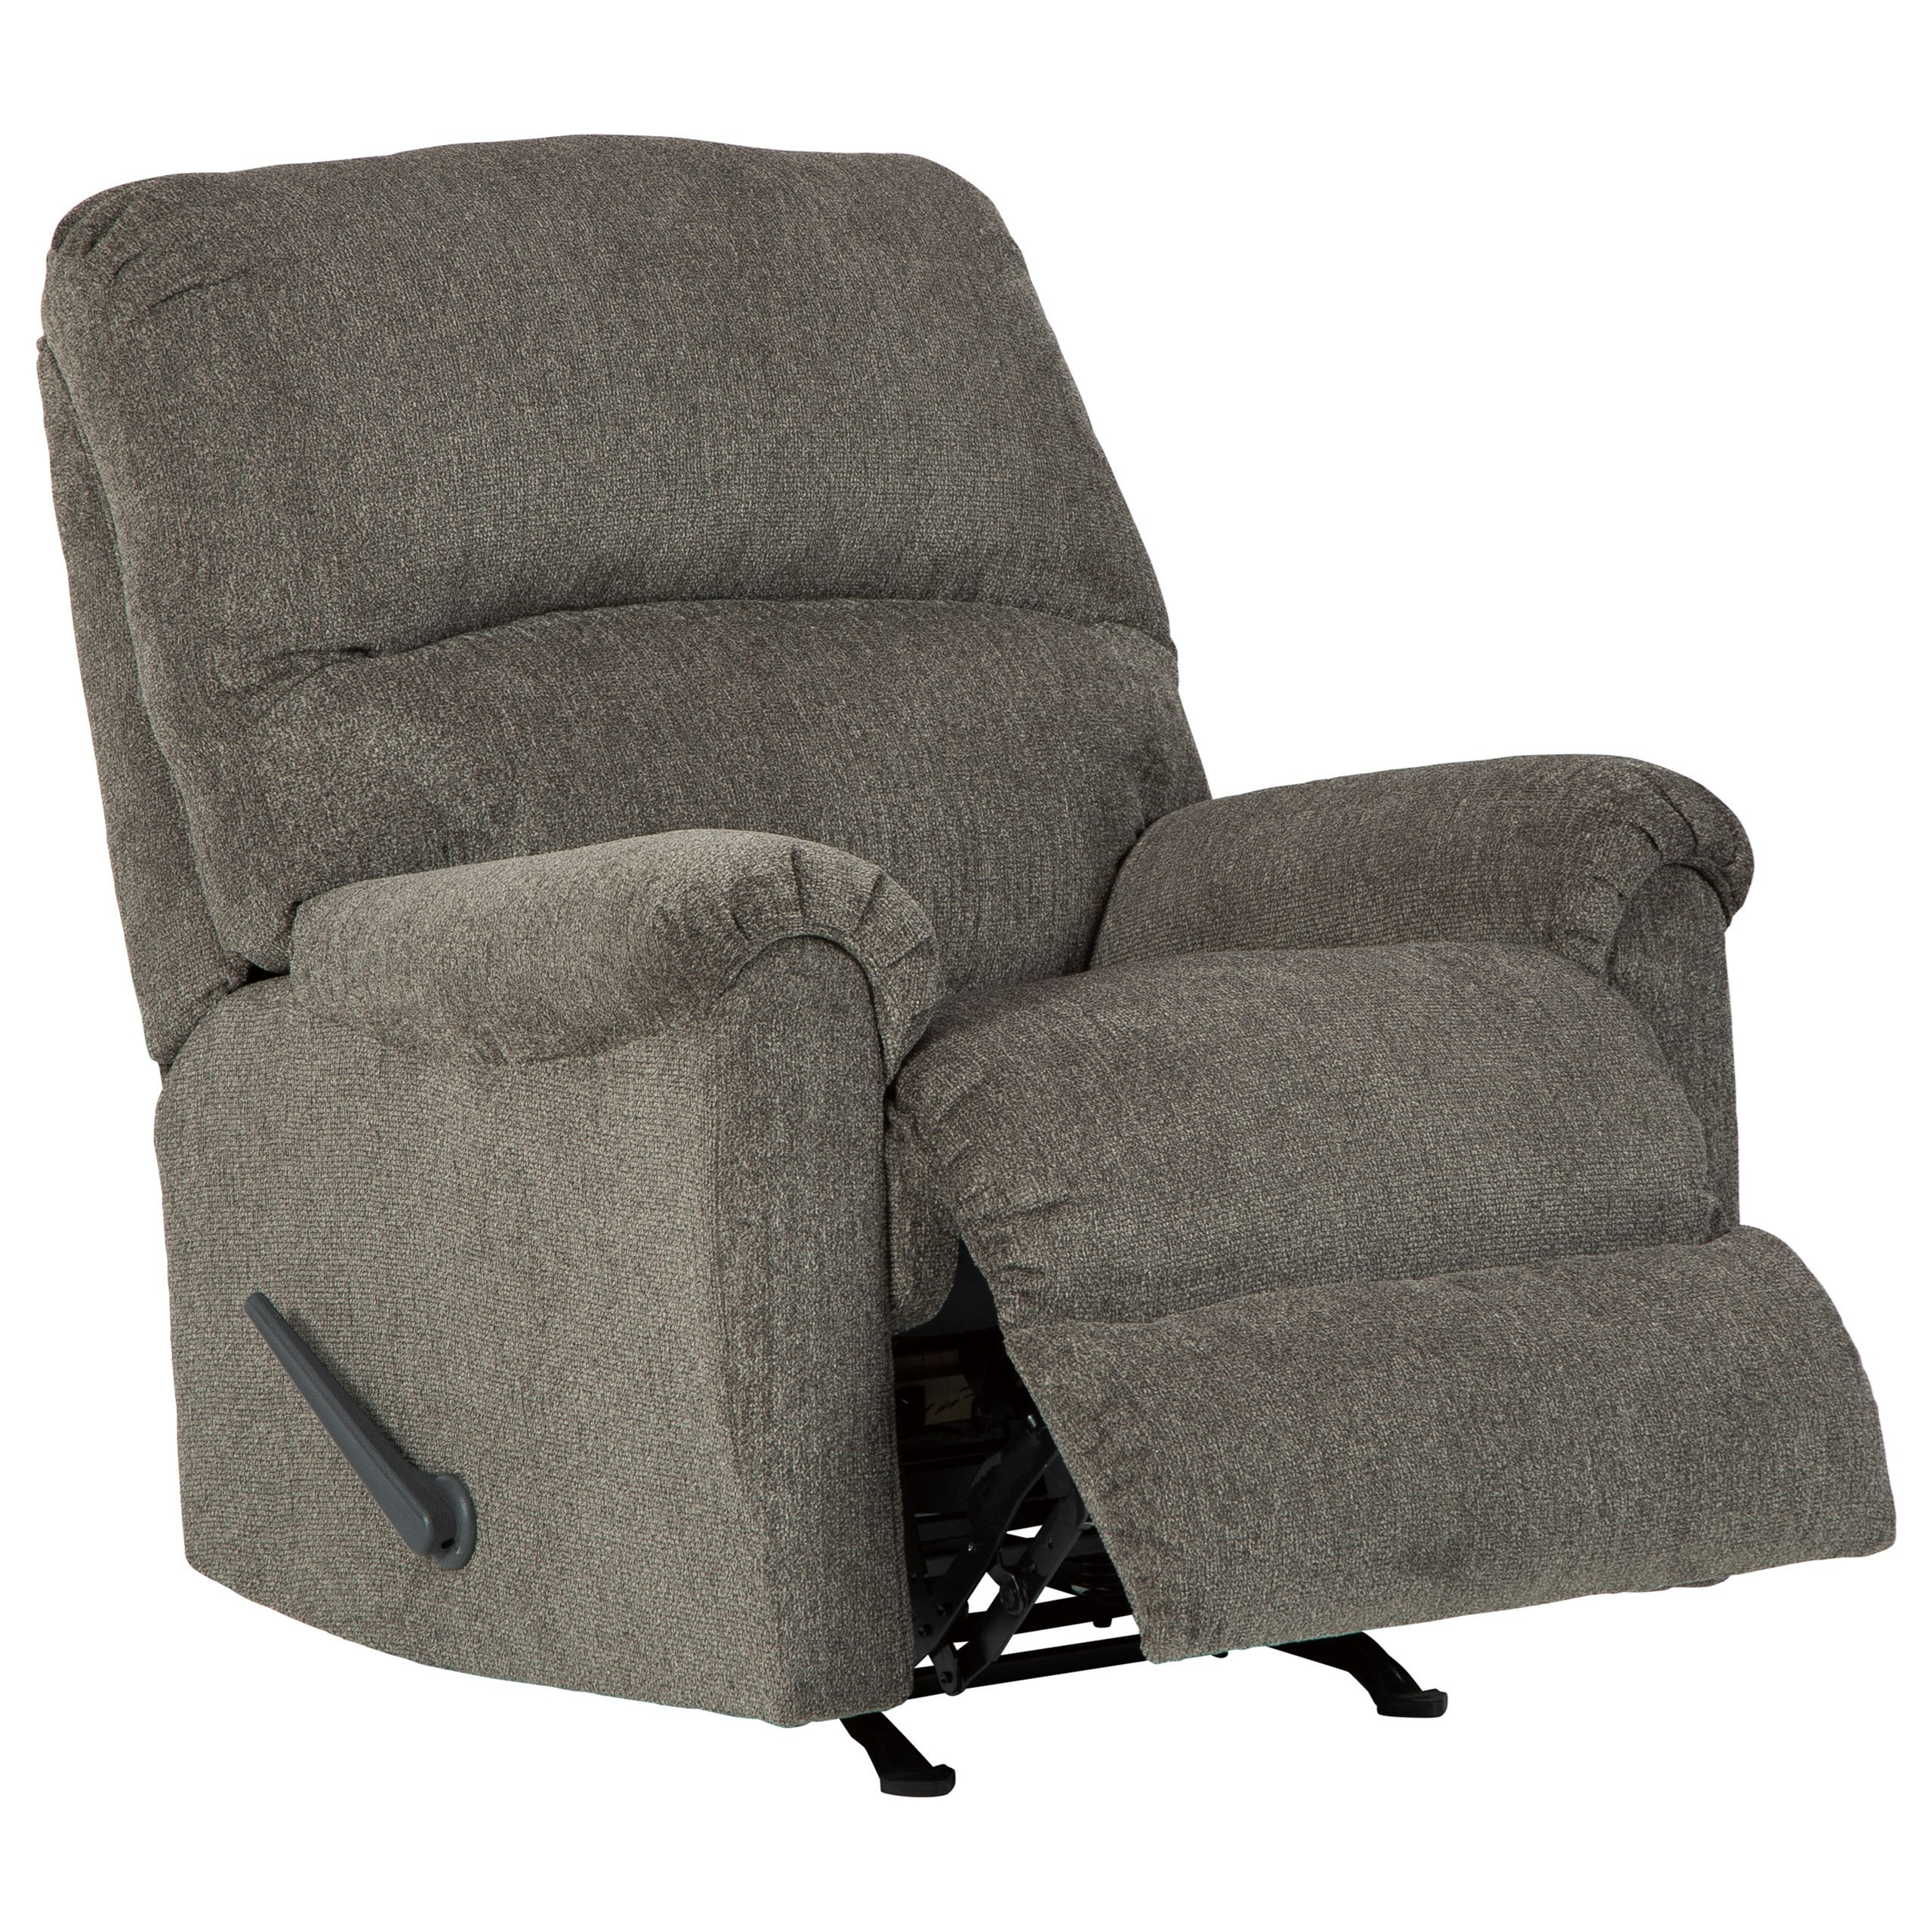 Dorsten Rocker Recliner by Signature Design by Ashley at Beck's Furniture